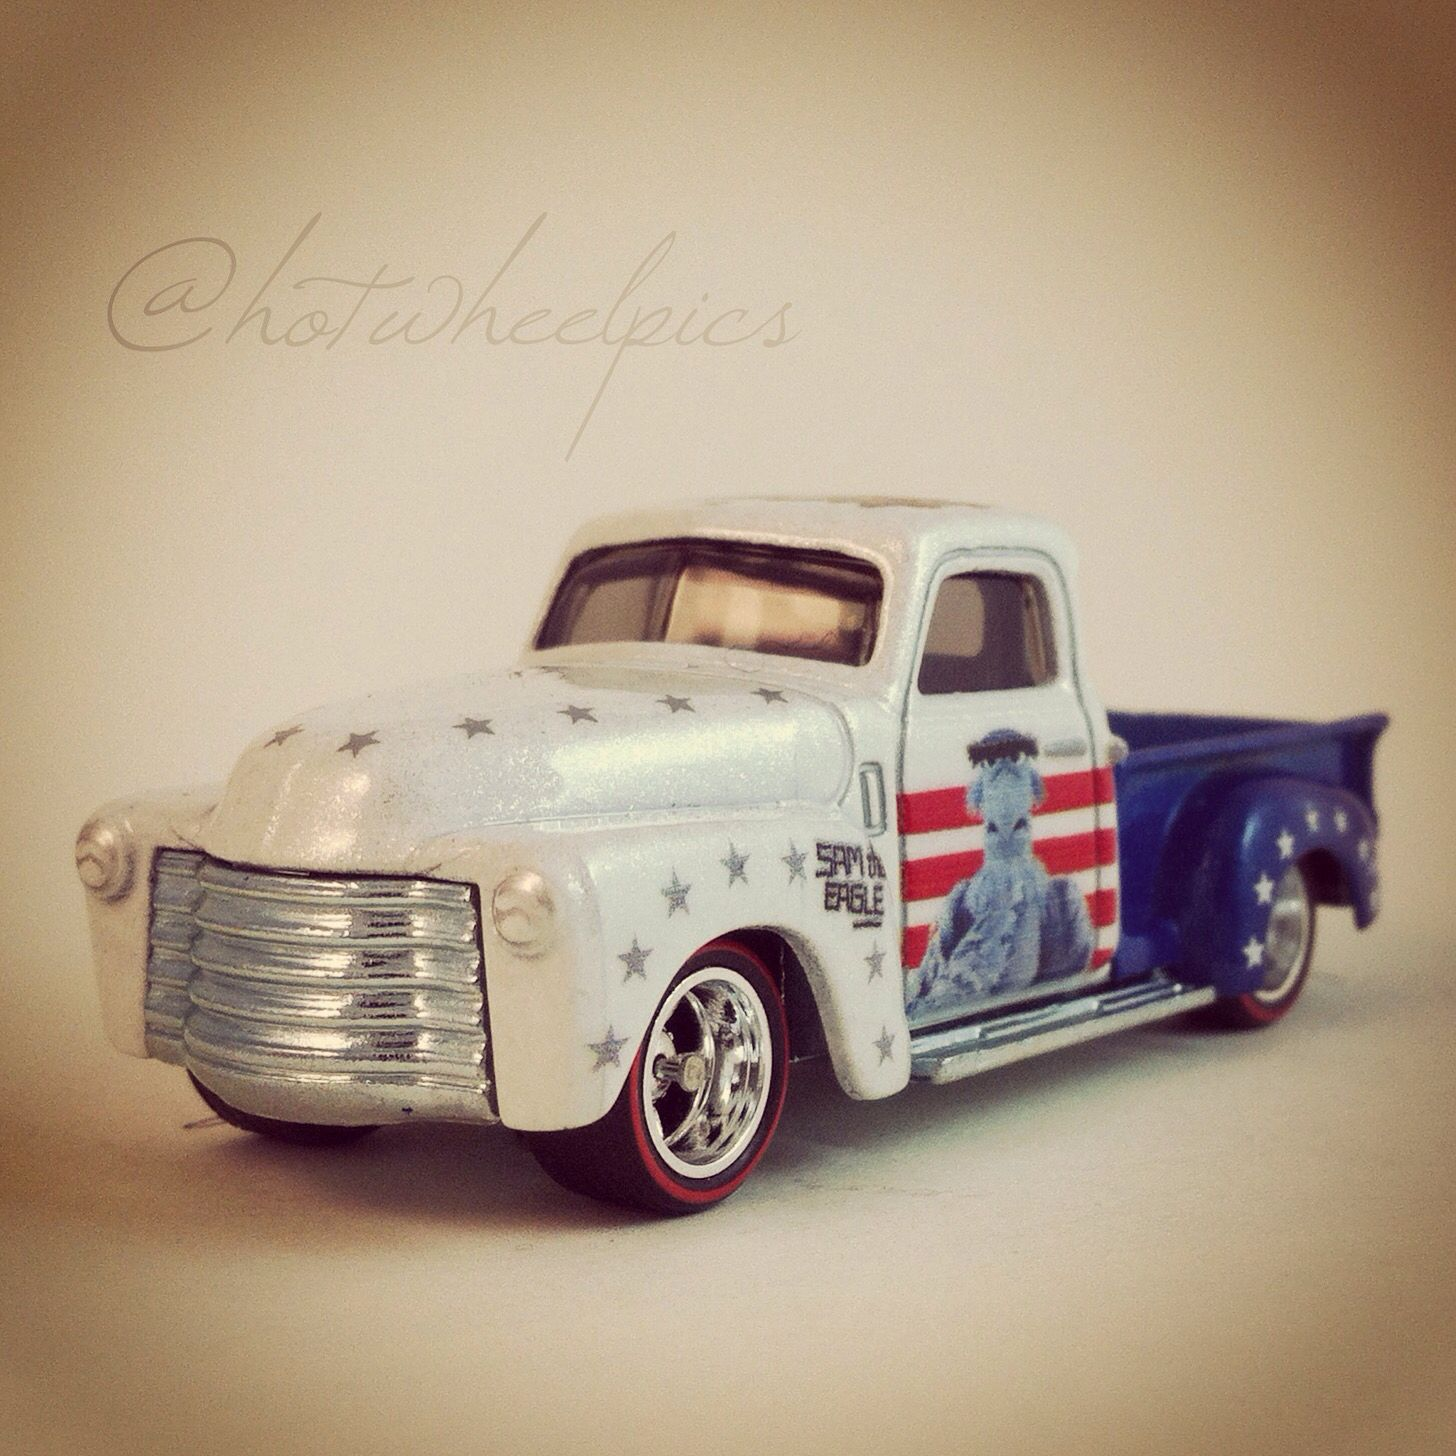 Sam The Eagle 52 Chevy Truck 2014 Hot Wheels Pop Culture